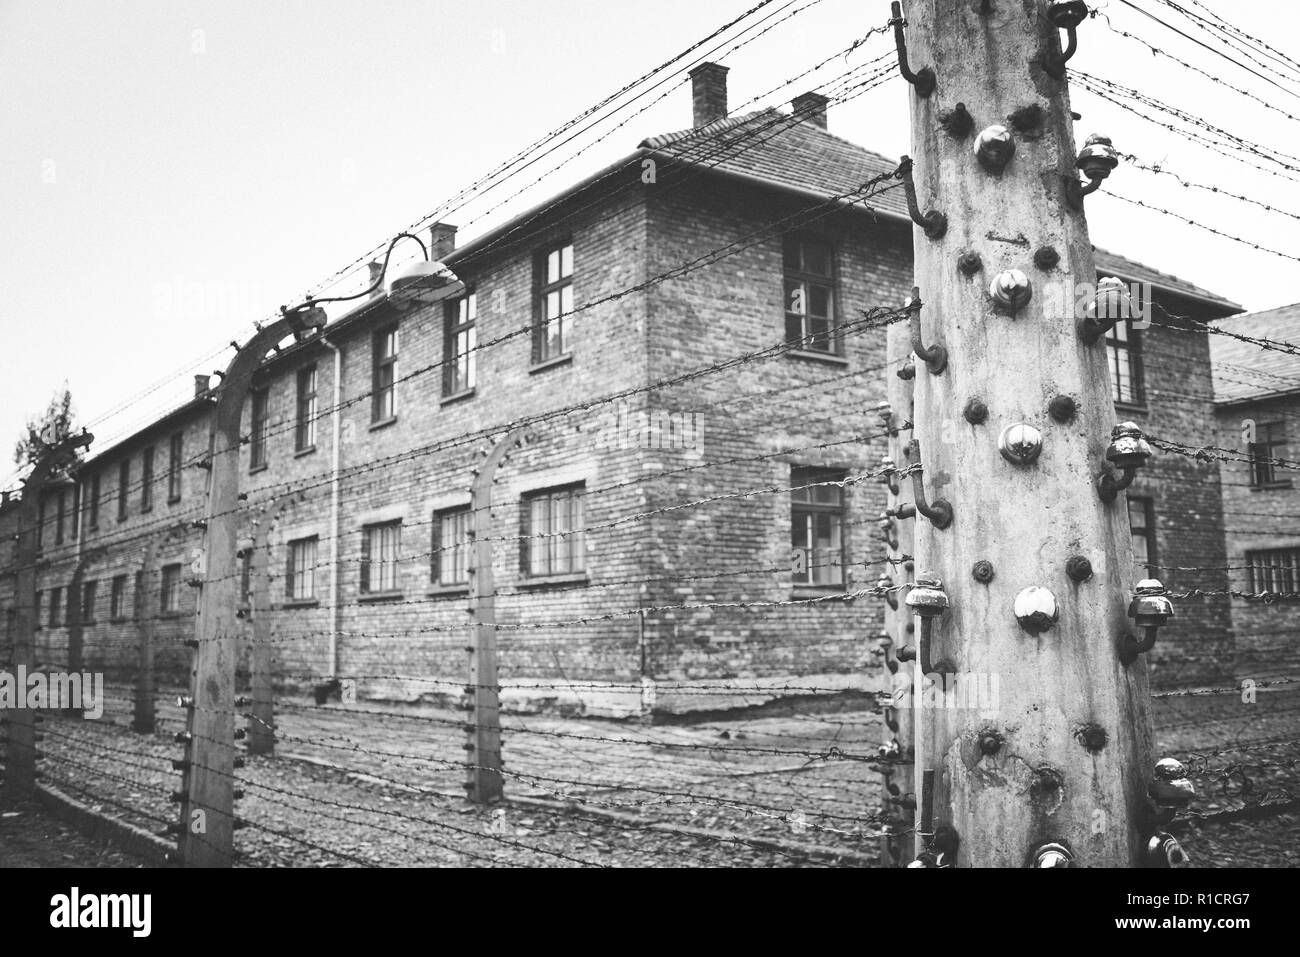 Auschwitz Nazi concentration and extermination camp. Electrified fences. Auschwitz, German-occupied, Poland, Europe - Stock Image